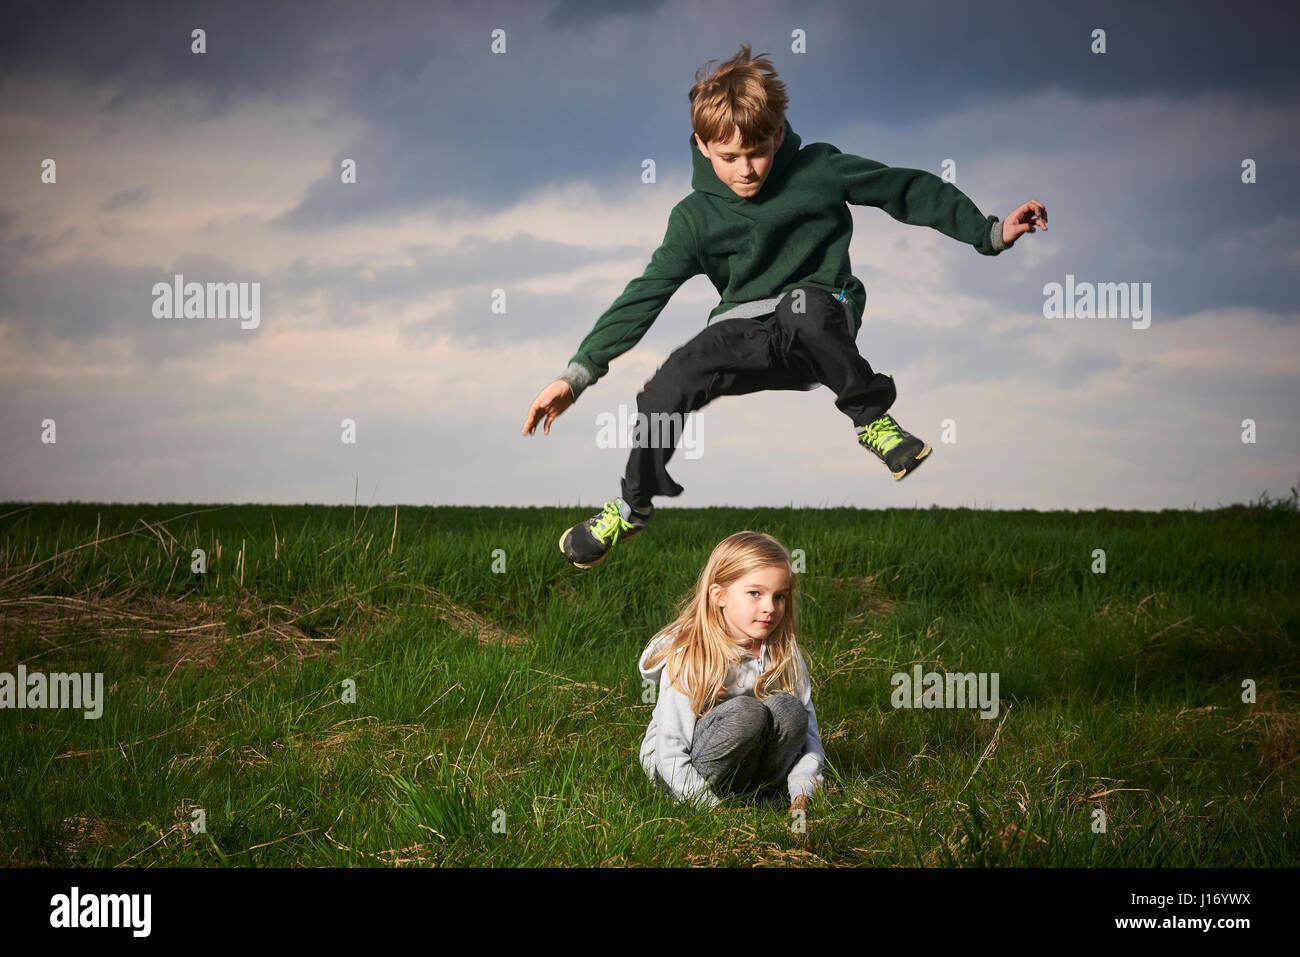 Brother Jumping Over Sister In Meadow Cloudy Sky Background Children Summer Outdoor Activities Jumping High And Far